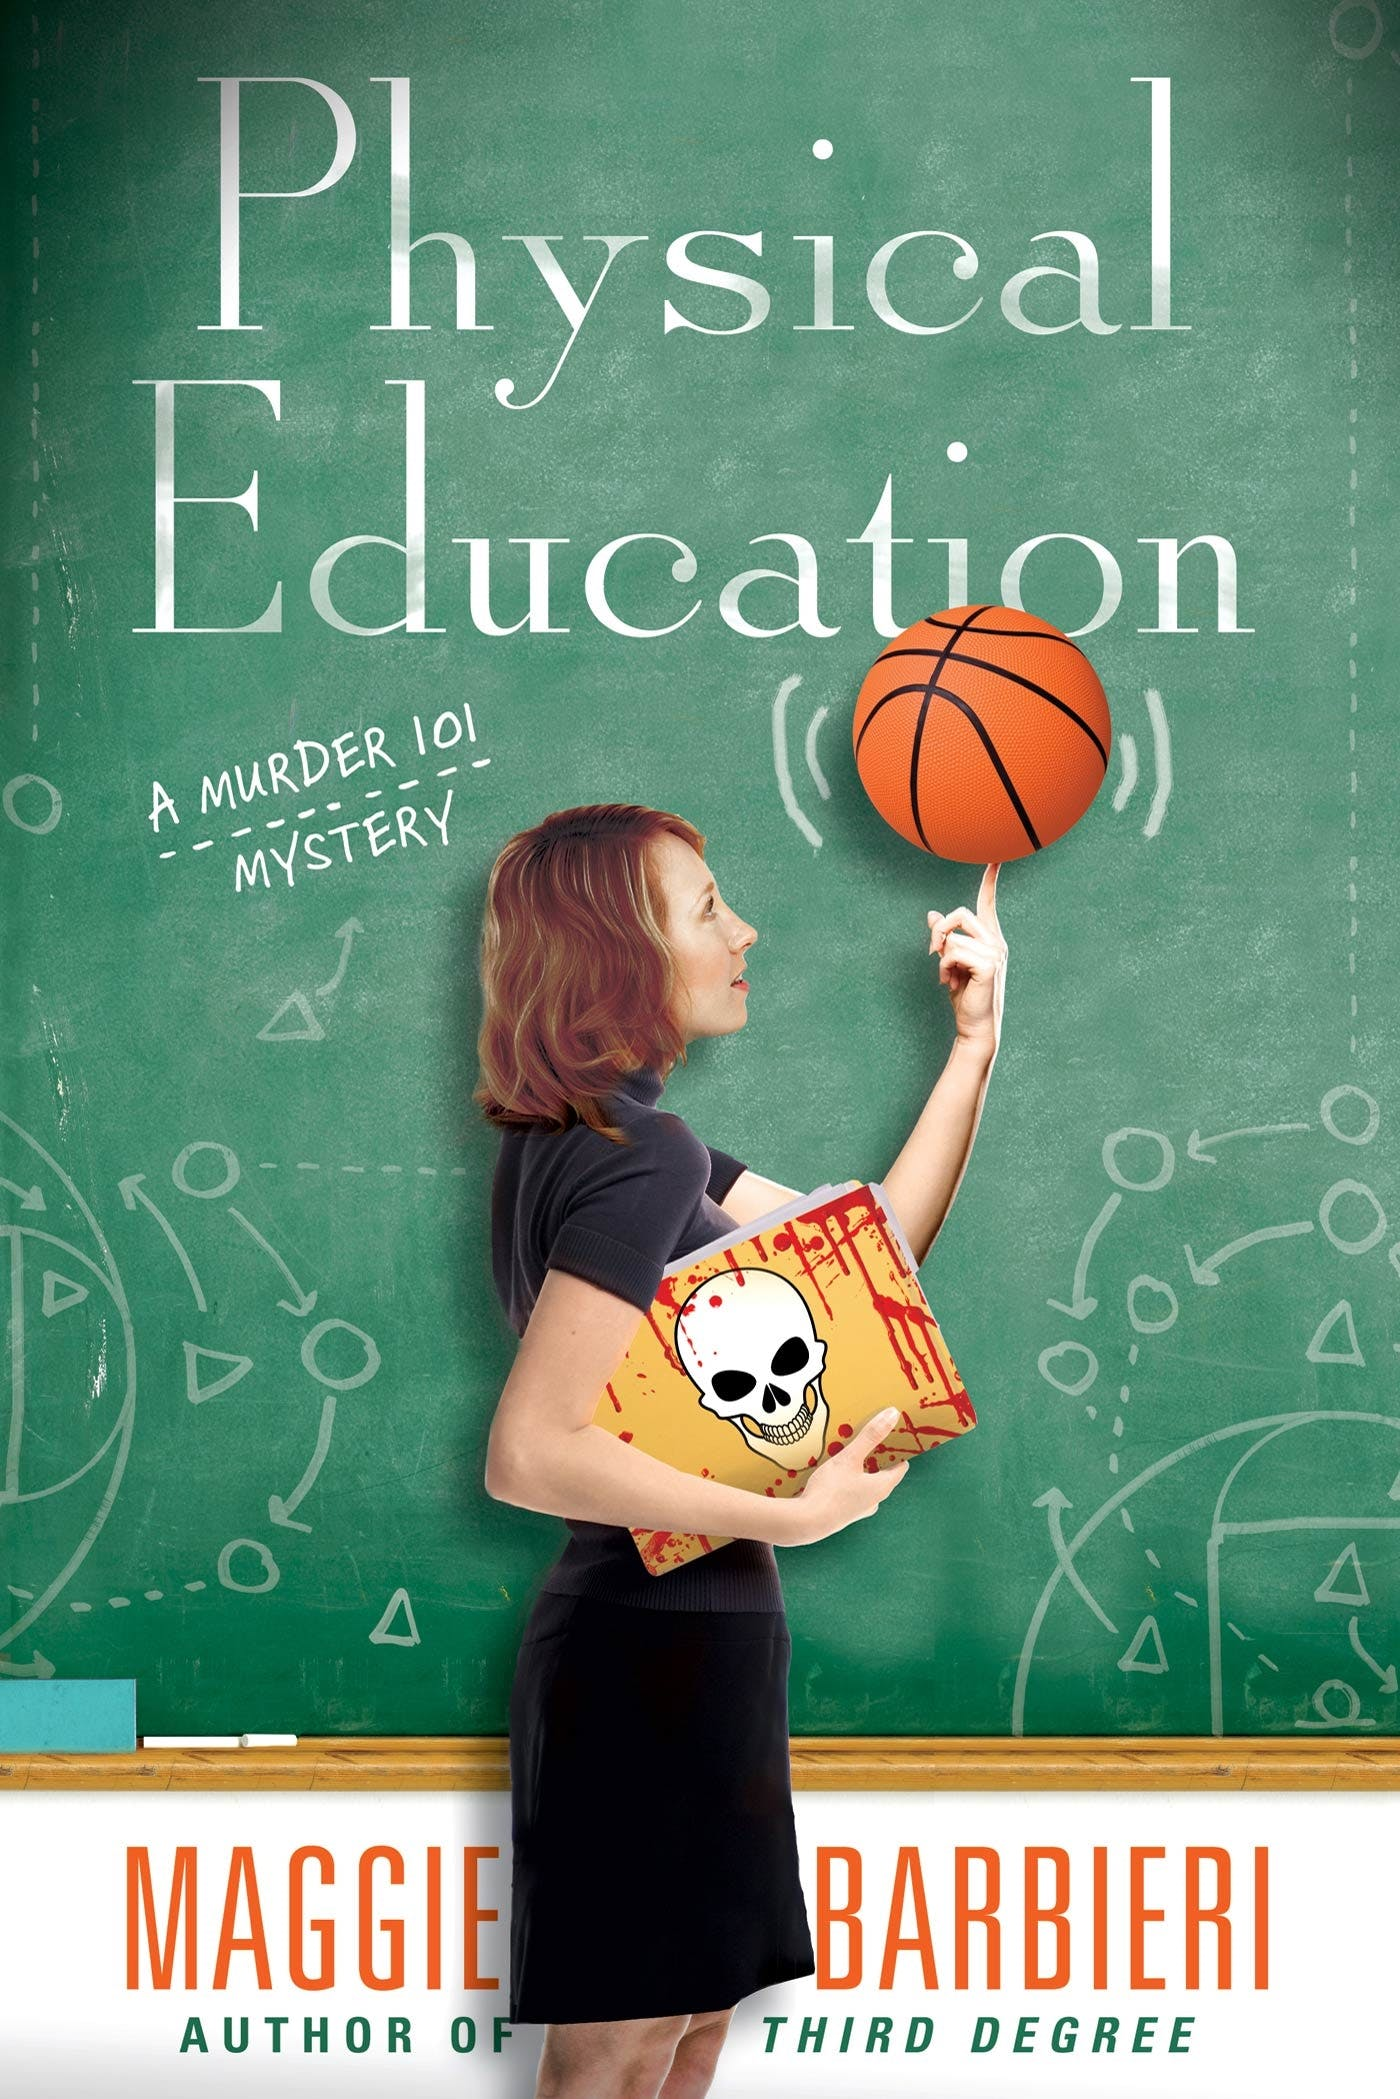 Image of Physical Education